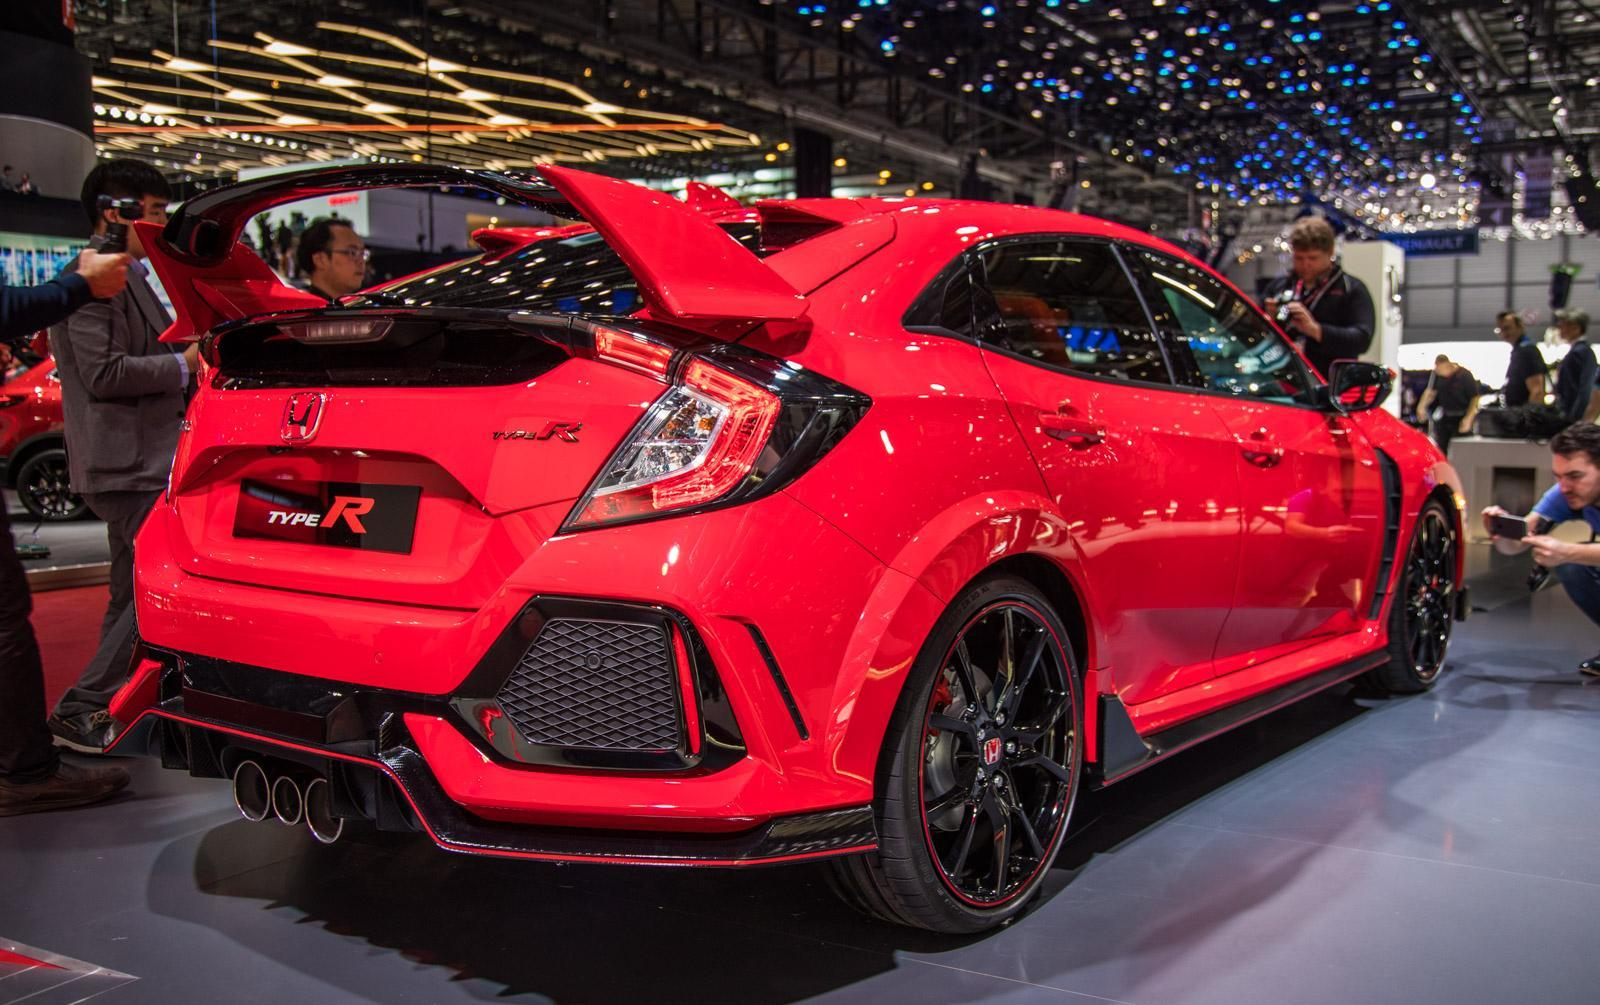 Honda-Civic-Type-R-011